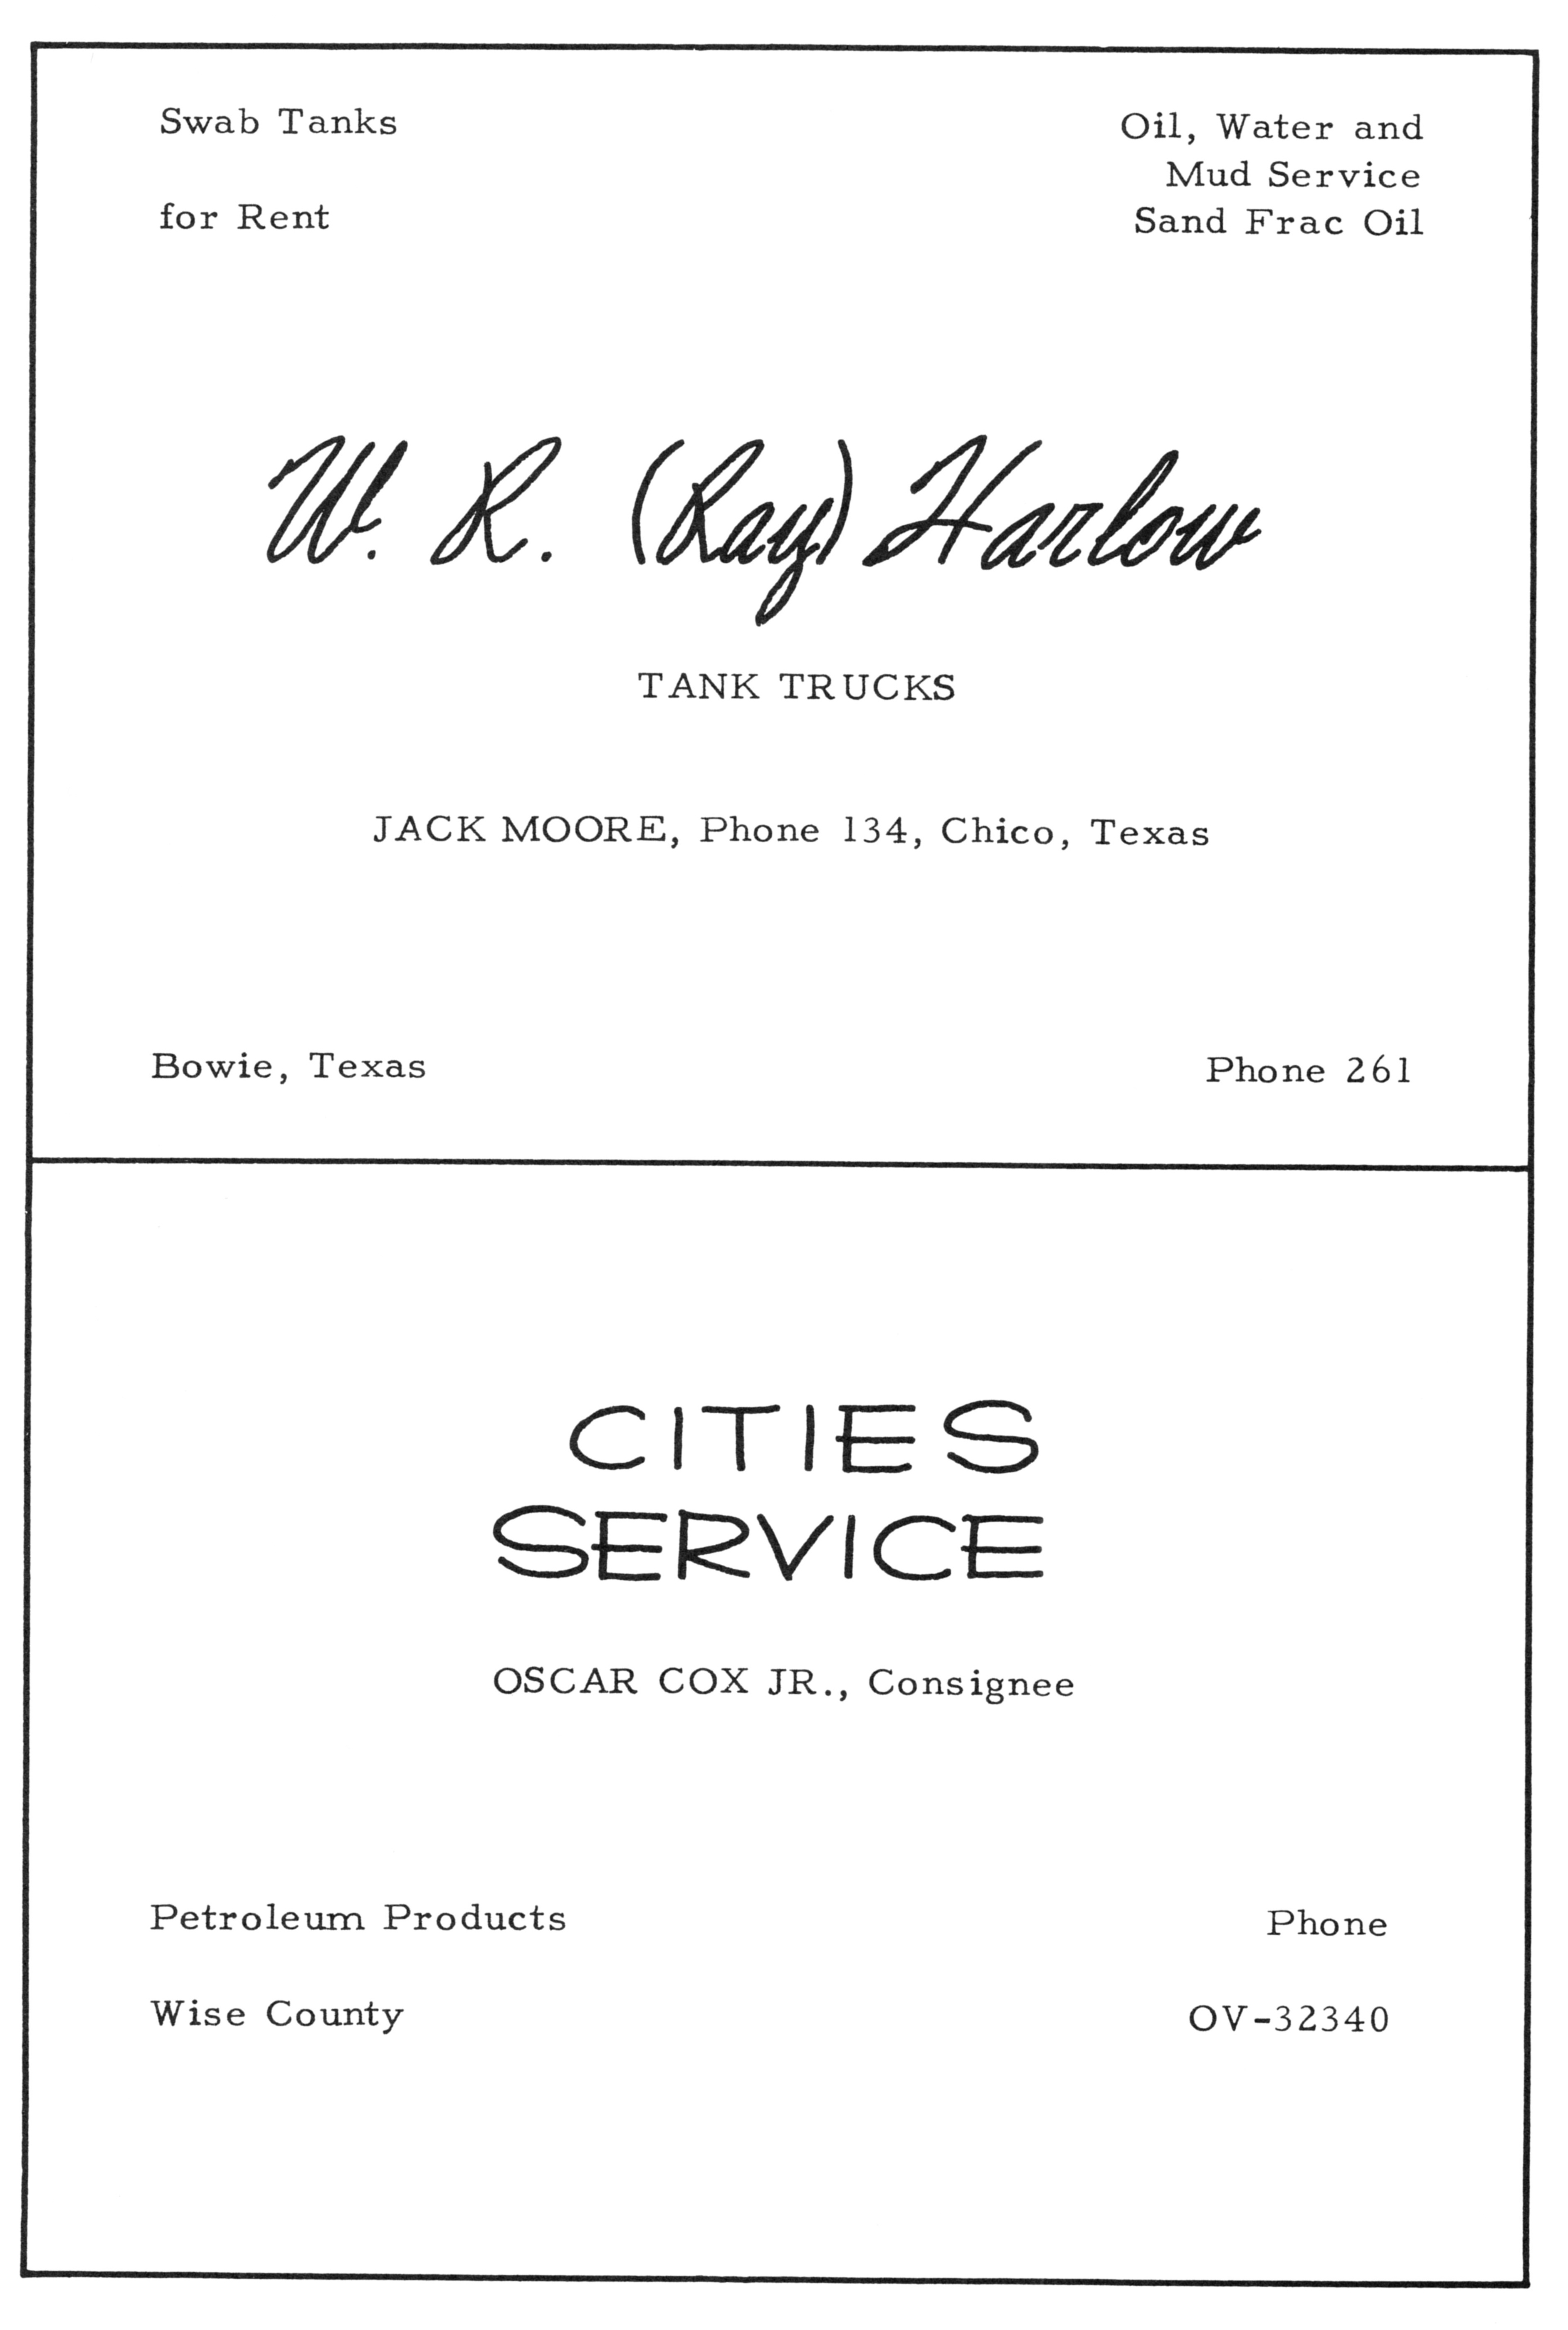 Index of Names C-D for the 1902 & 1941-1979 Chico TX